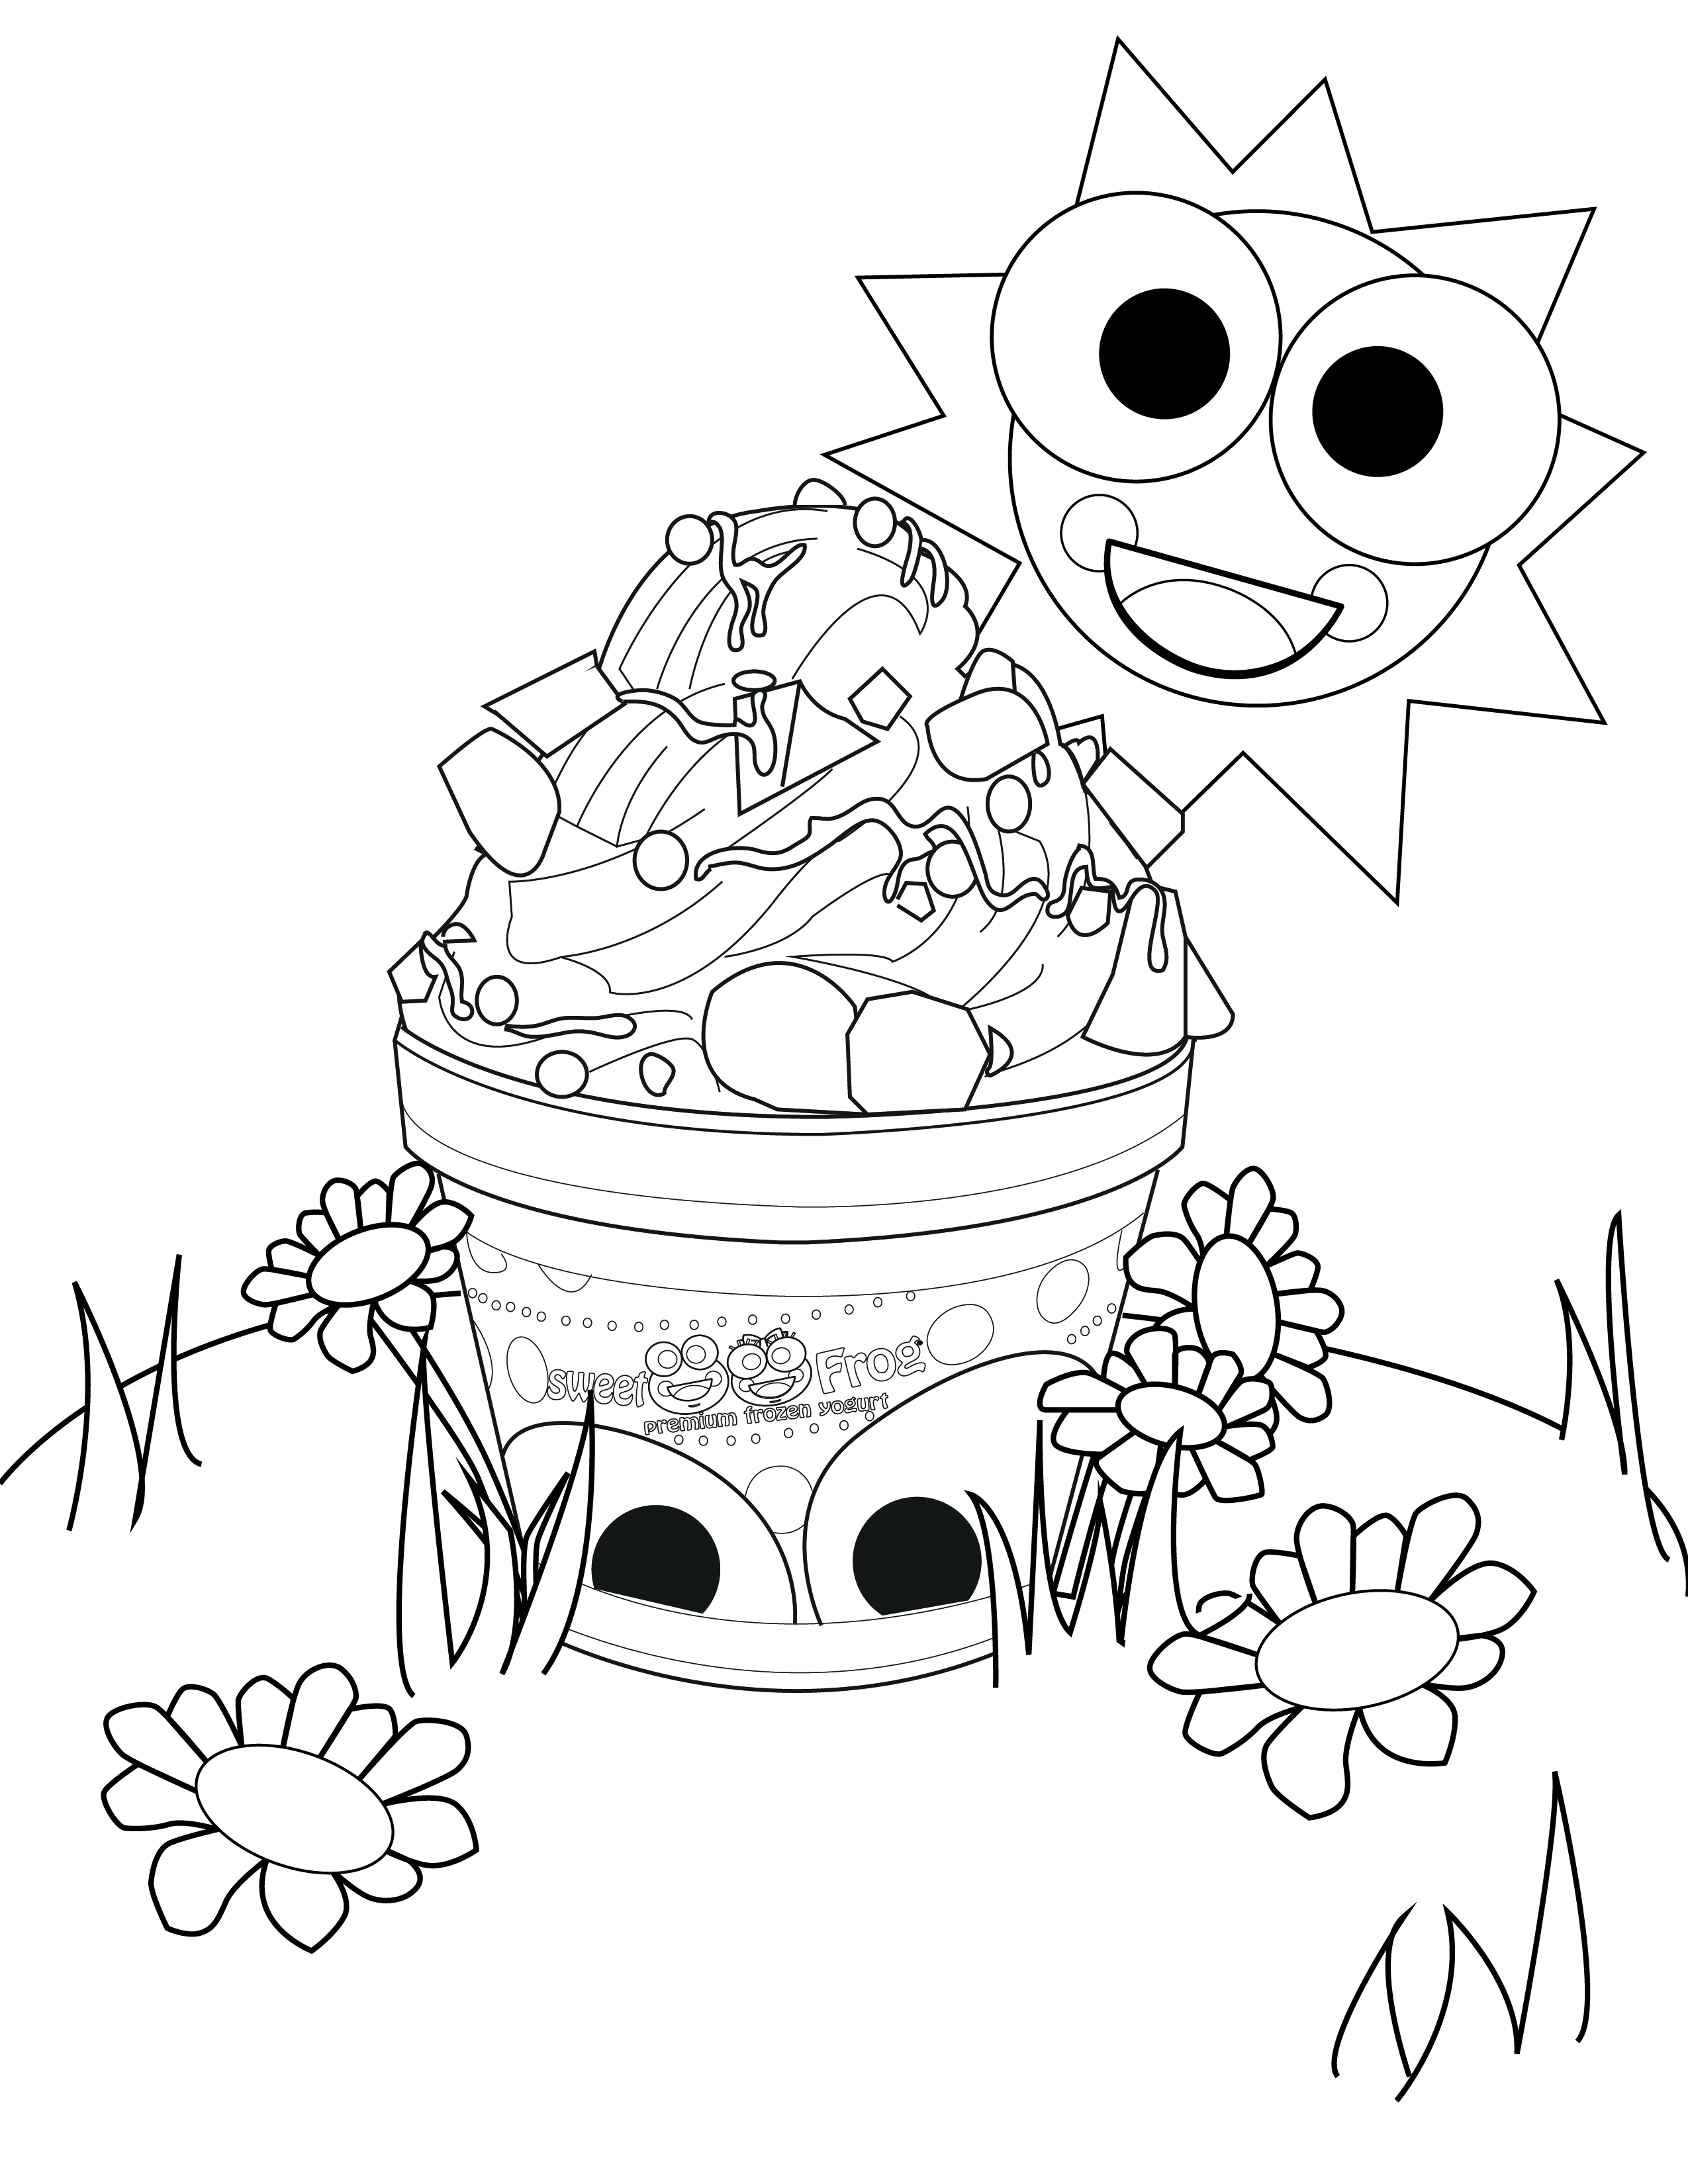 Yogurt Coloring Pages to Print 20o - Free For kids